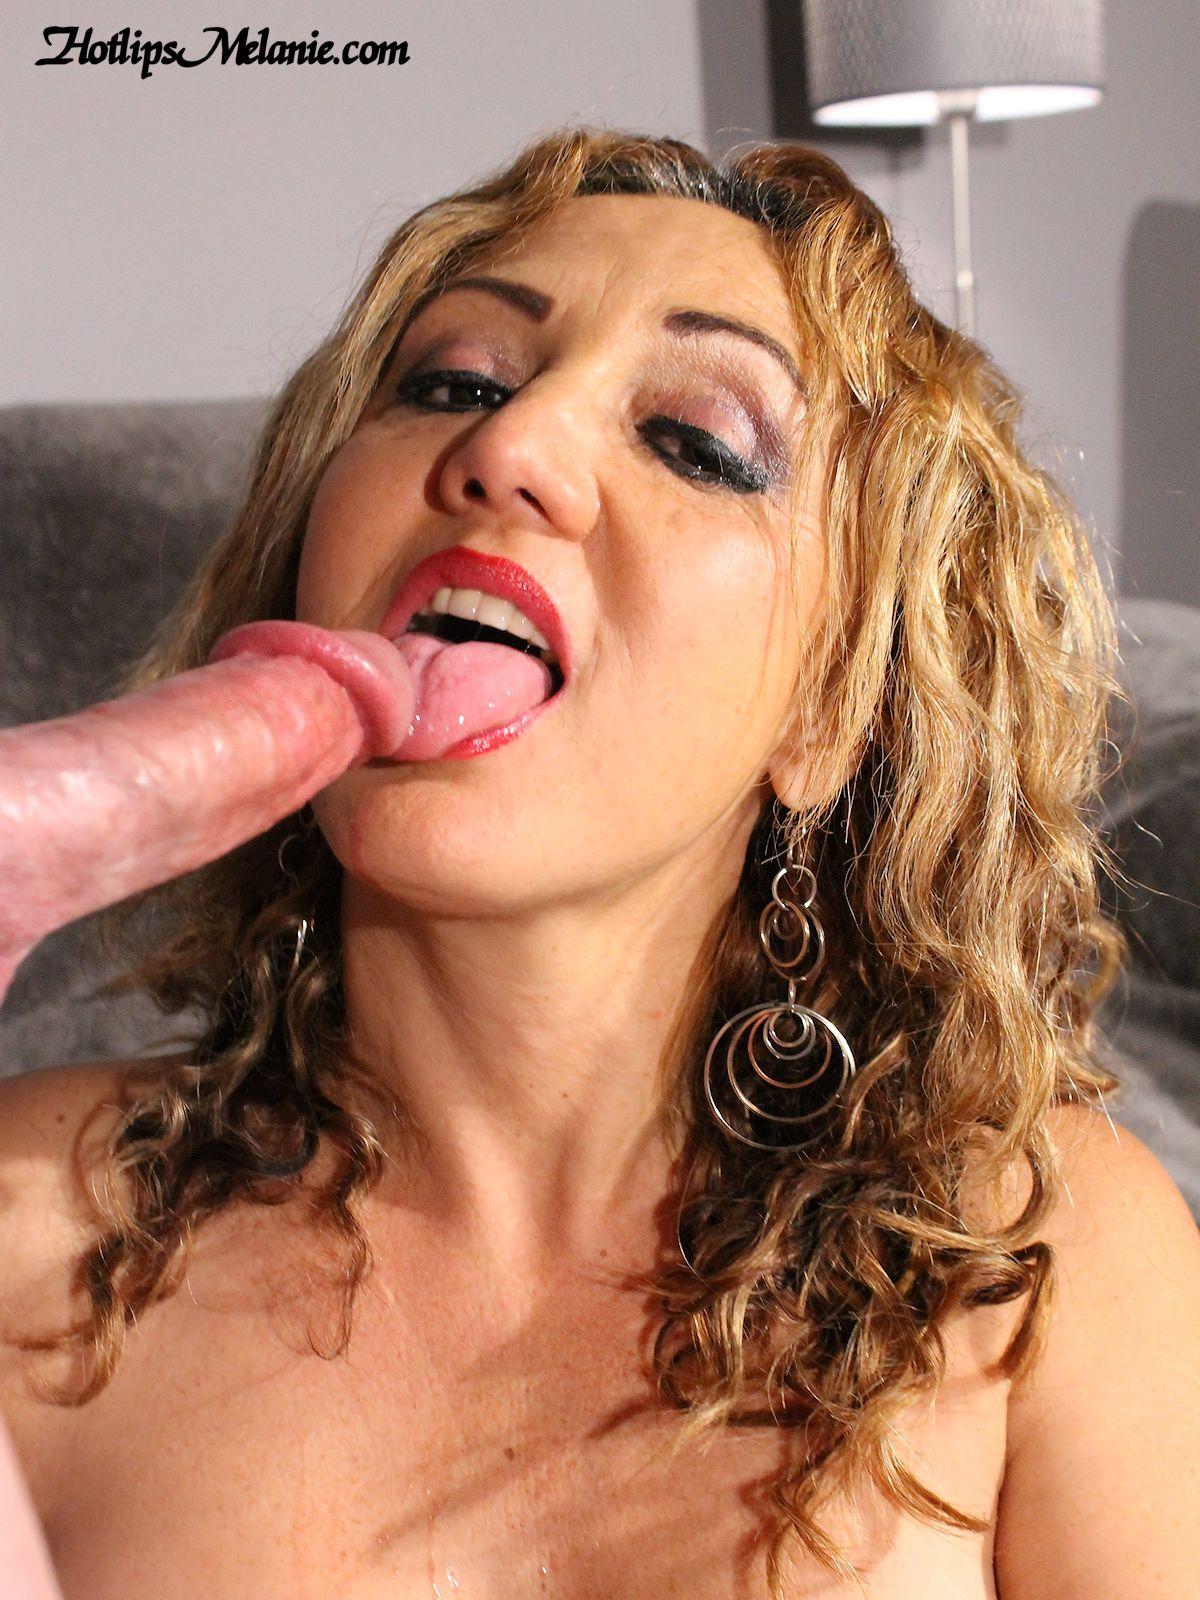 Pov doggystyle wife deepthroats husband and gets creampied 4